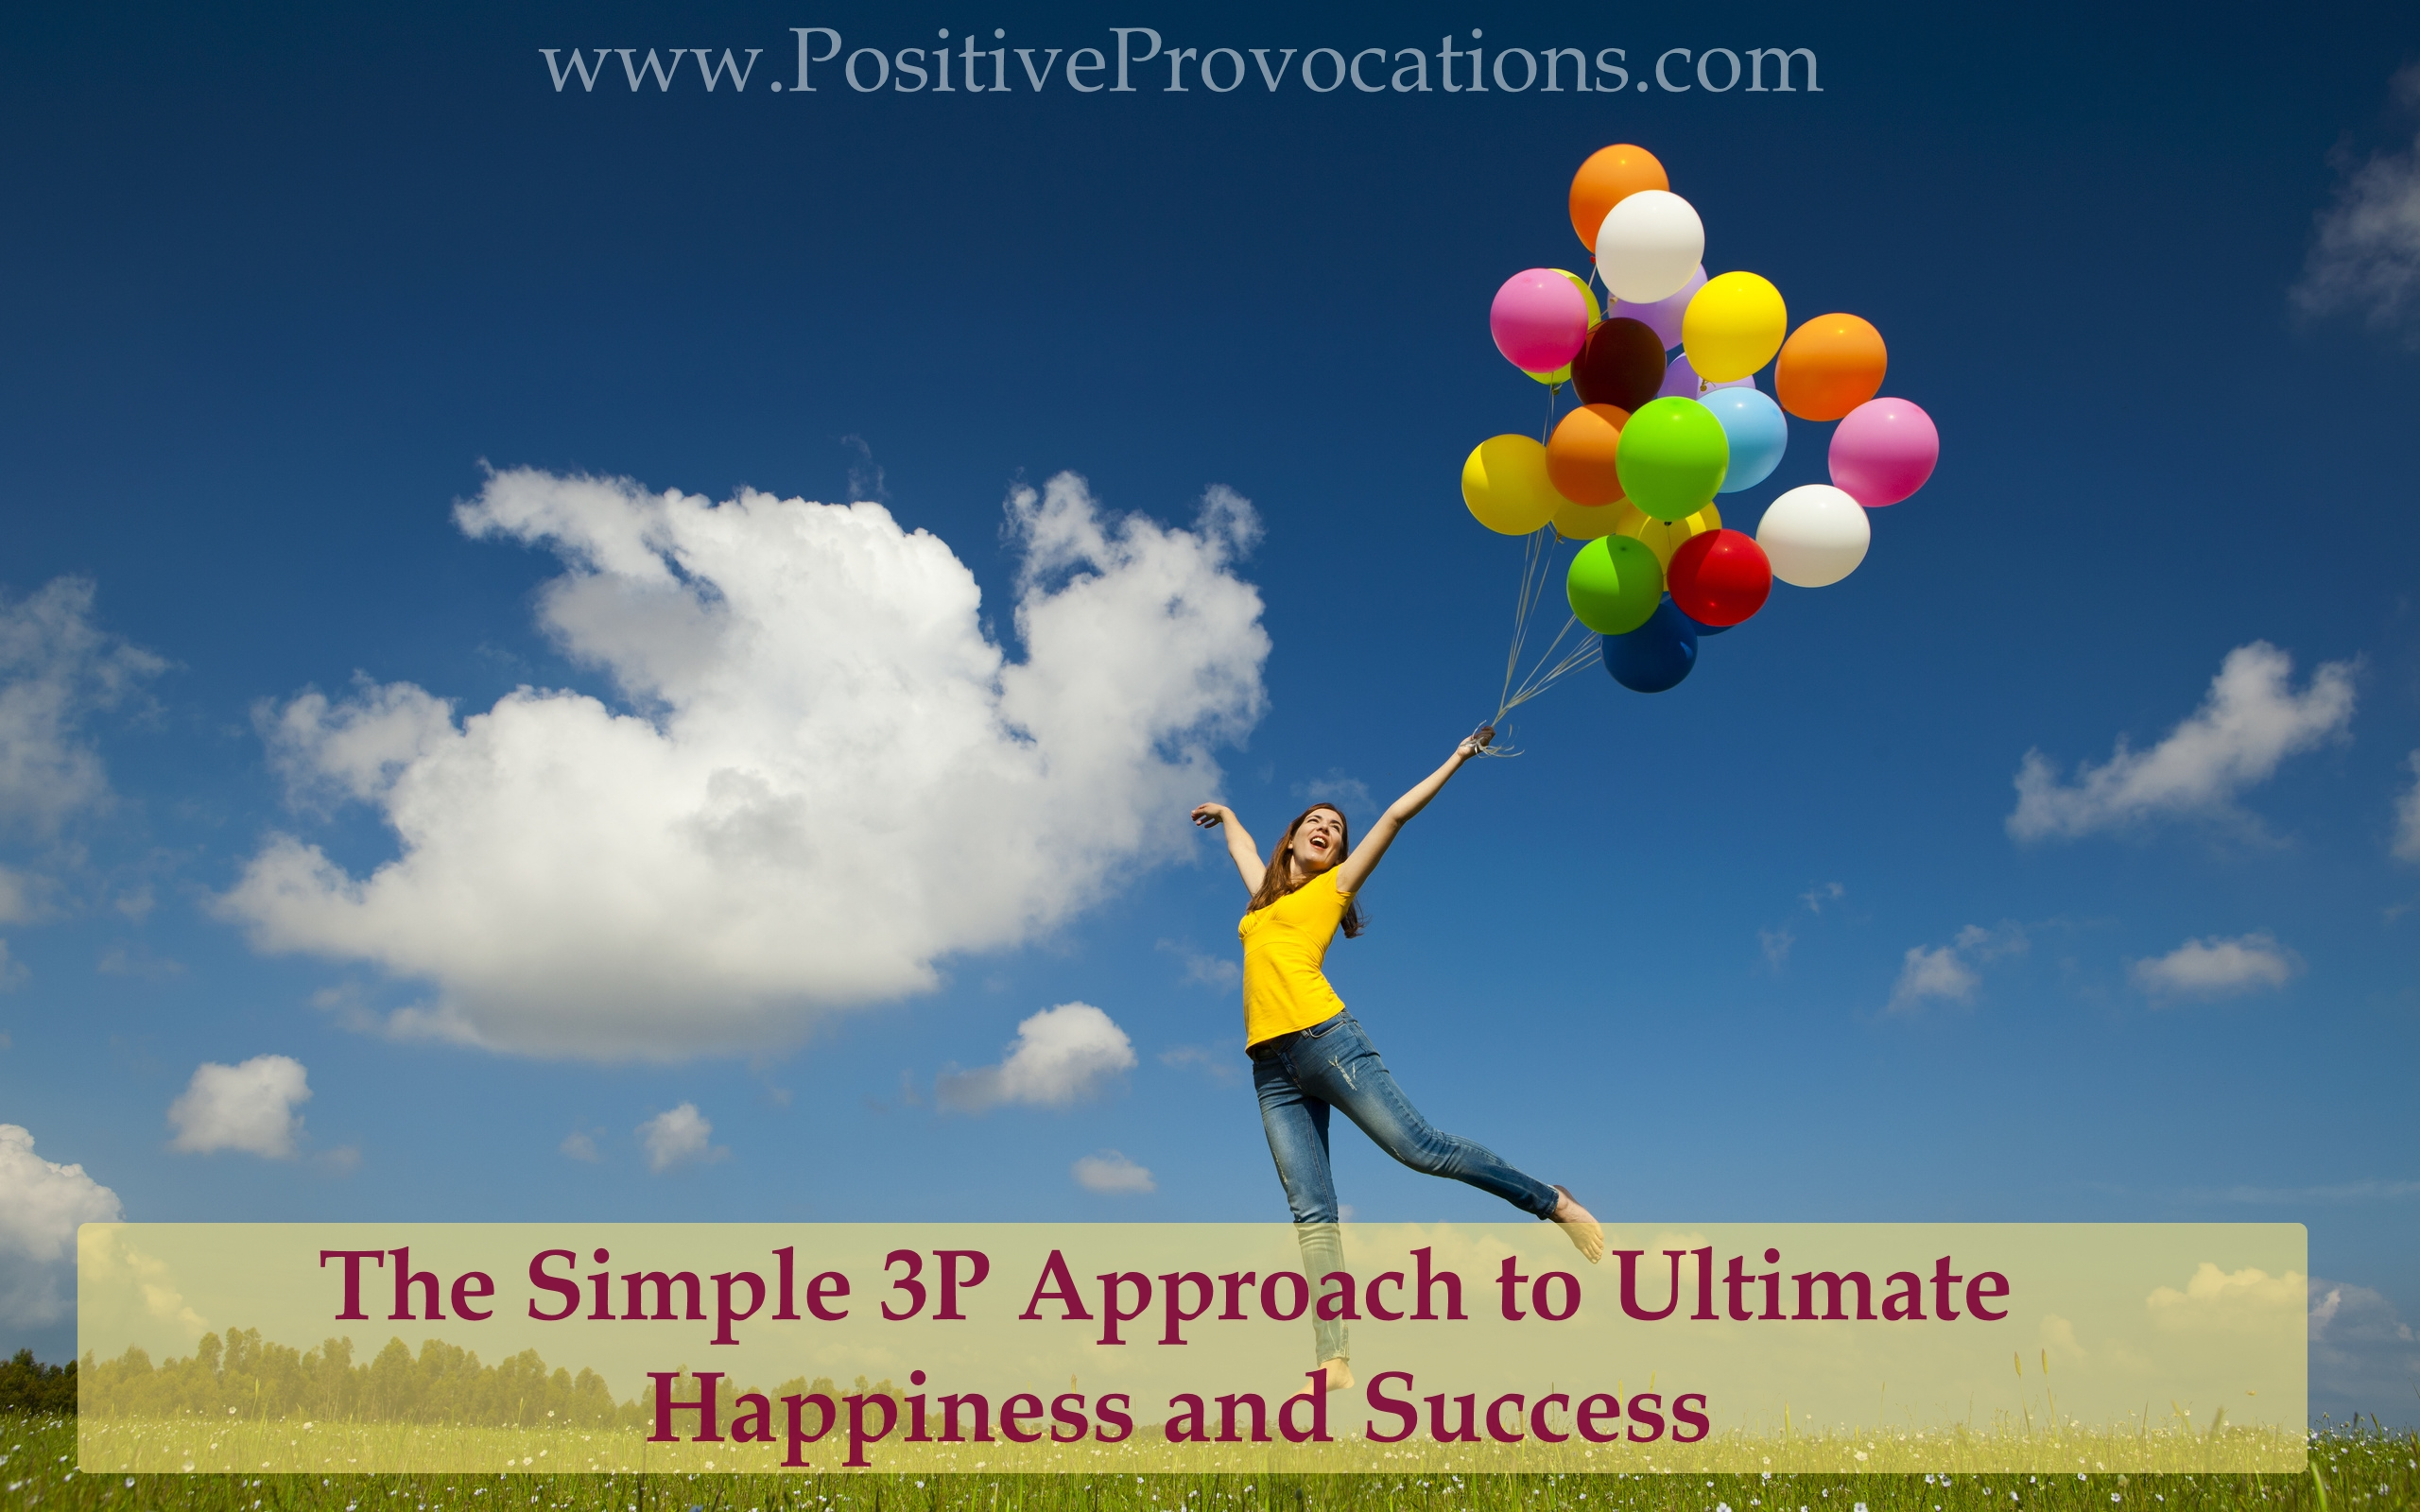 The Simple 3P Approach to Ultimate Happiness and Success Positive Provocations